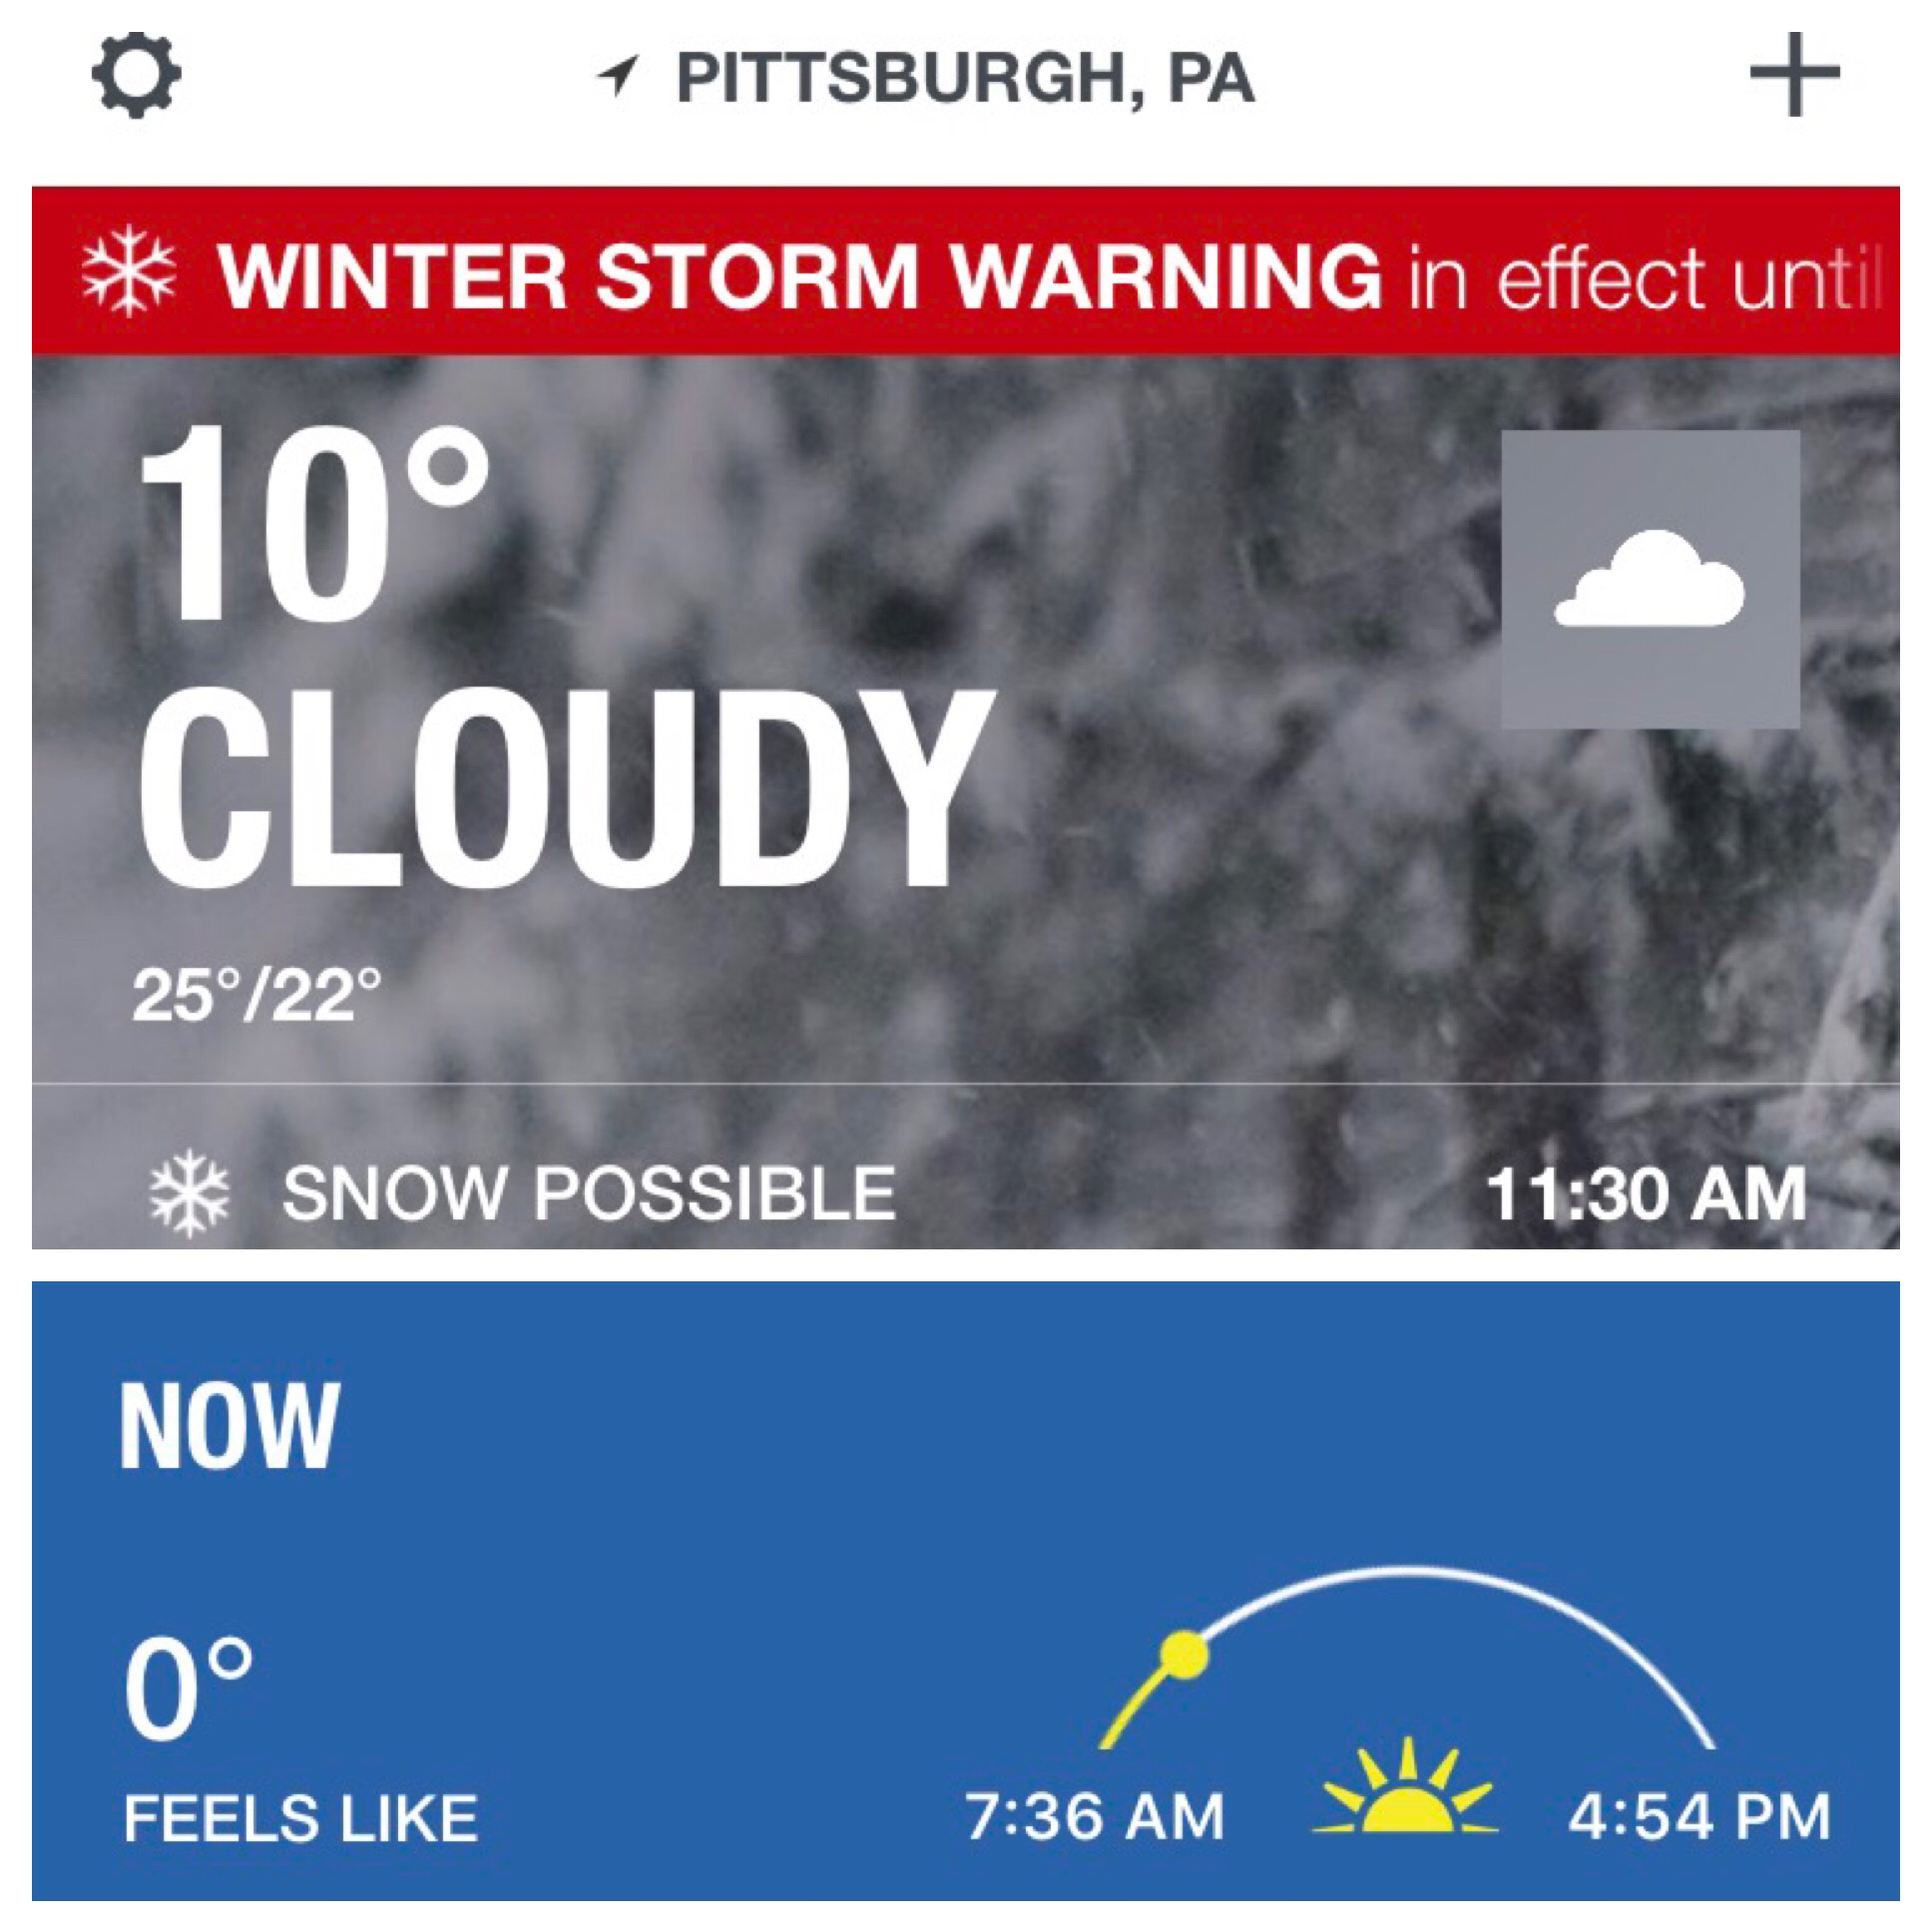 I'd like to file a complaint...this city is too damn cold AND no one seems to know how to forecast it!